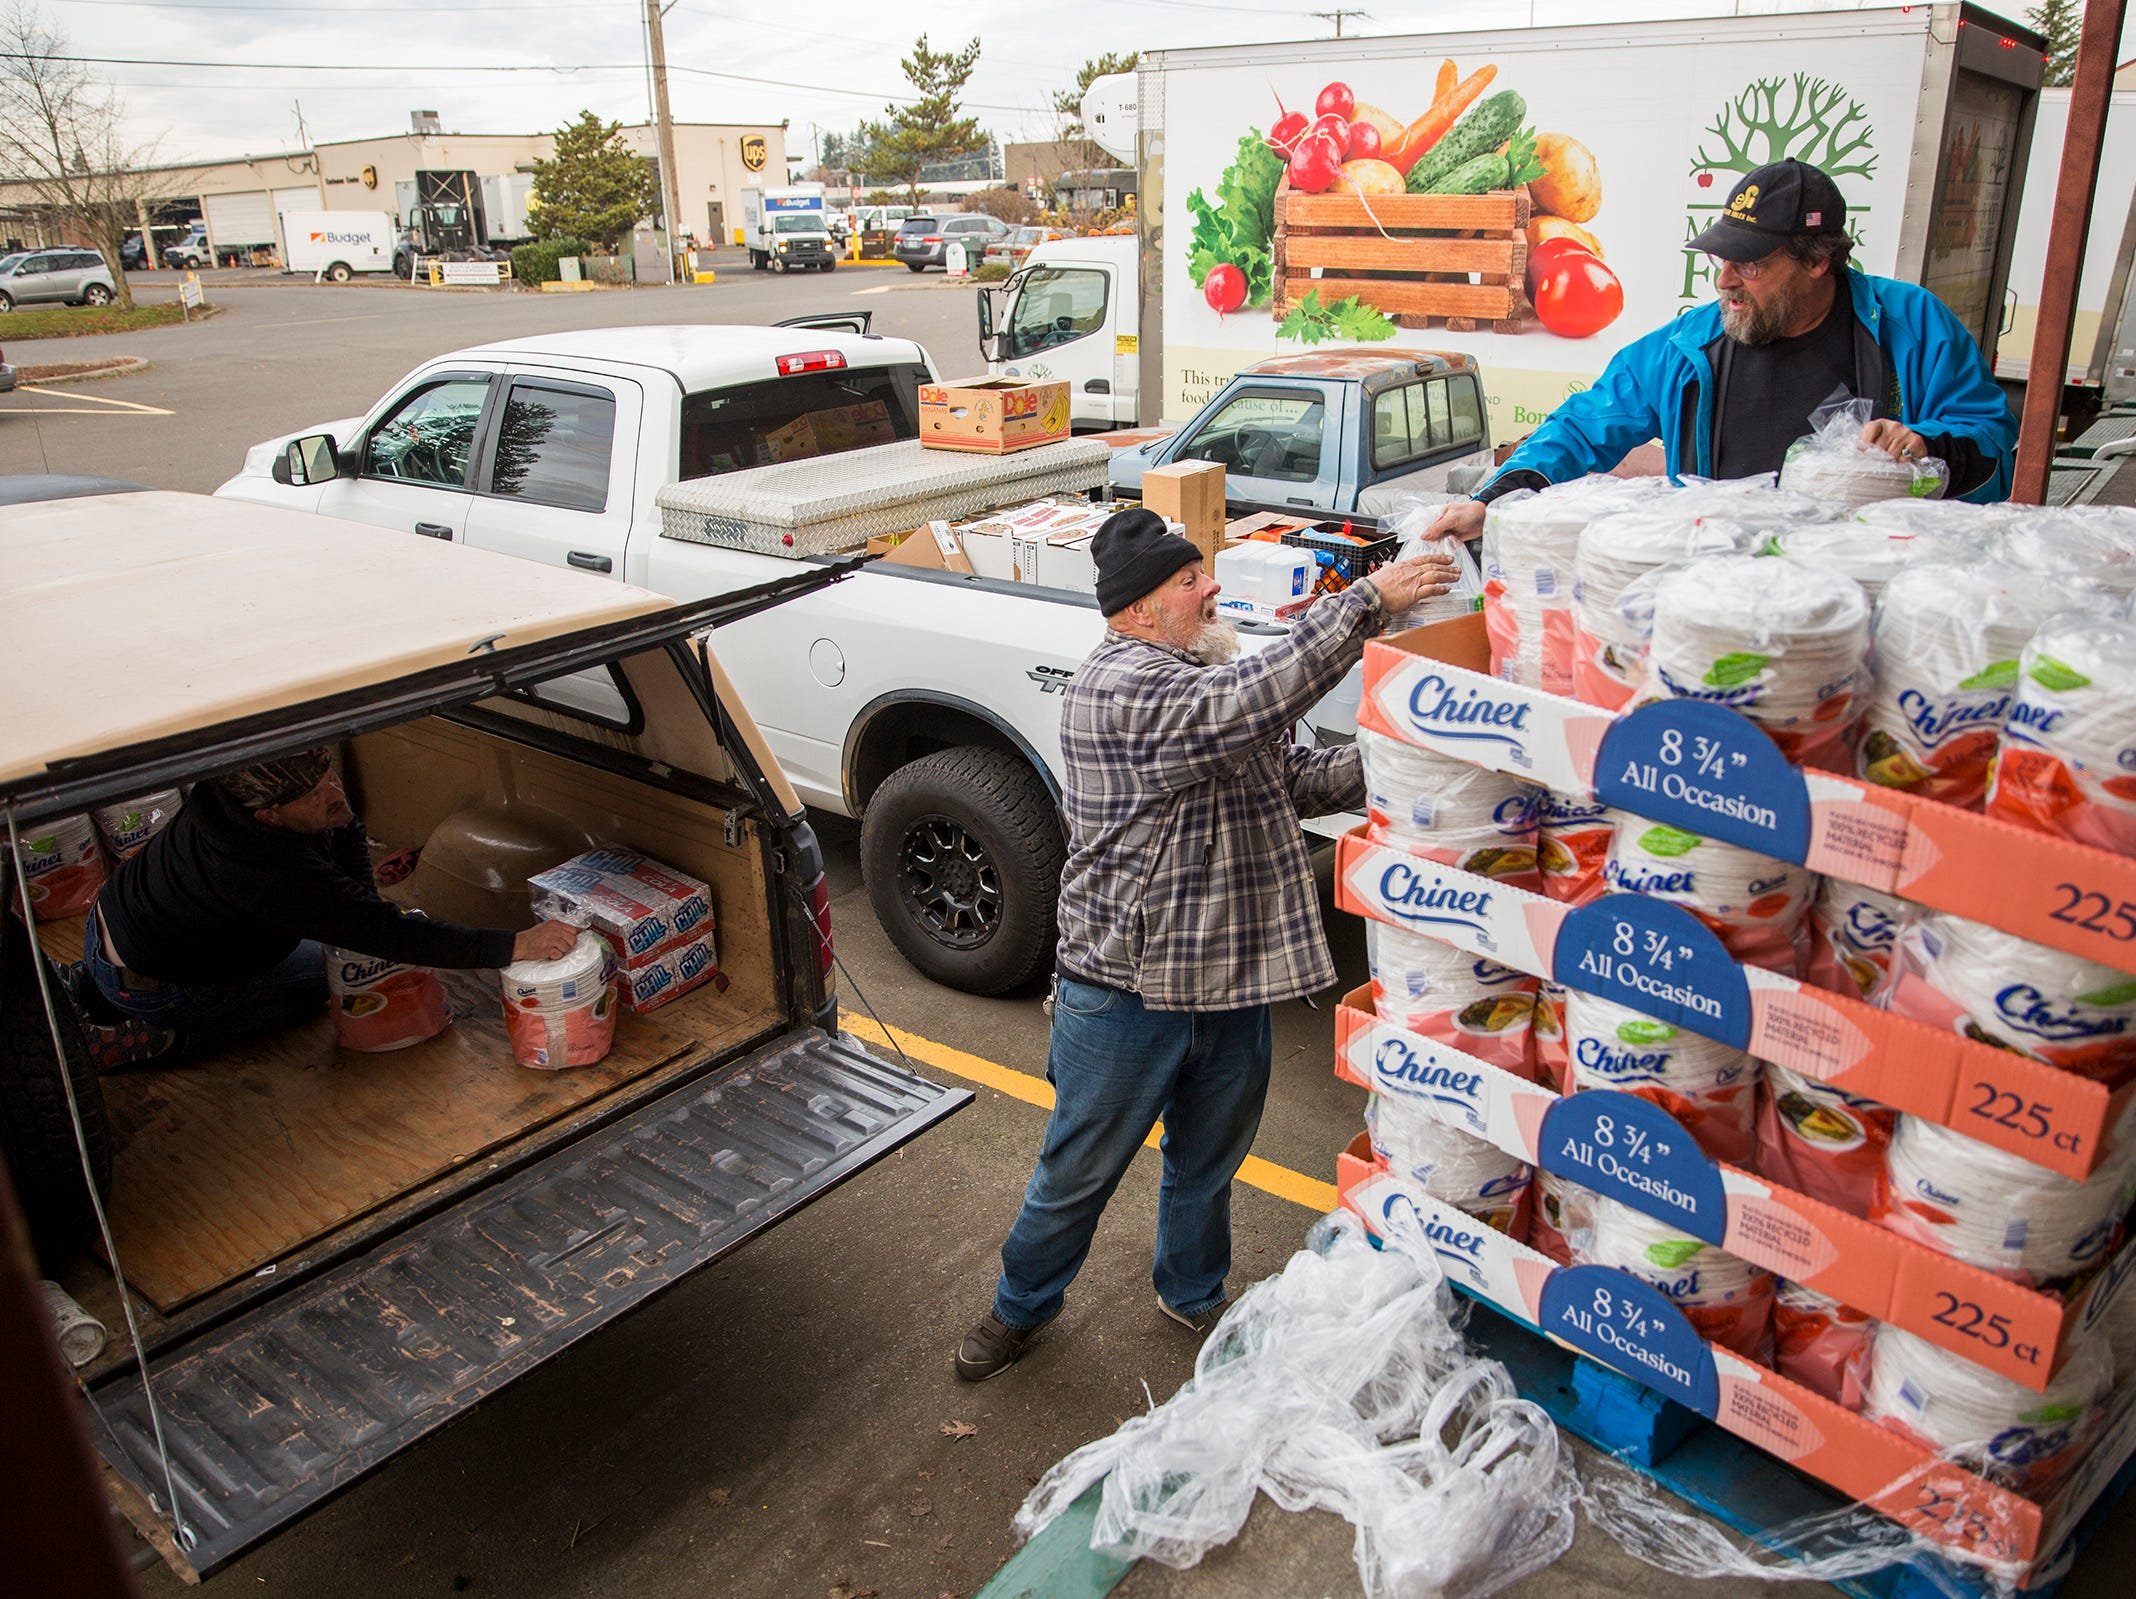 Doug Pendleton and Charlie Flynn load paper plates into a vehicle at the Marion-Polk Food Share on Friday, Dec. 7, 2018.